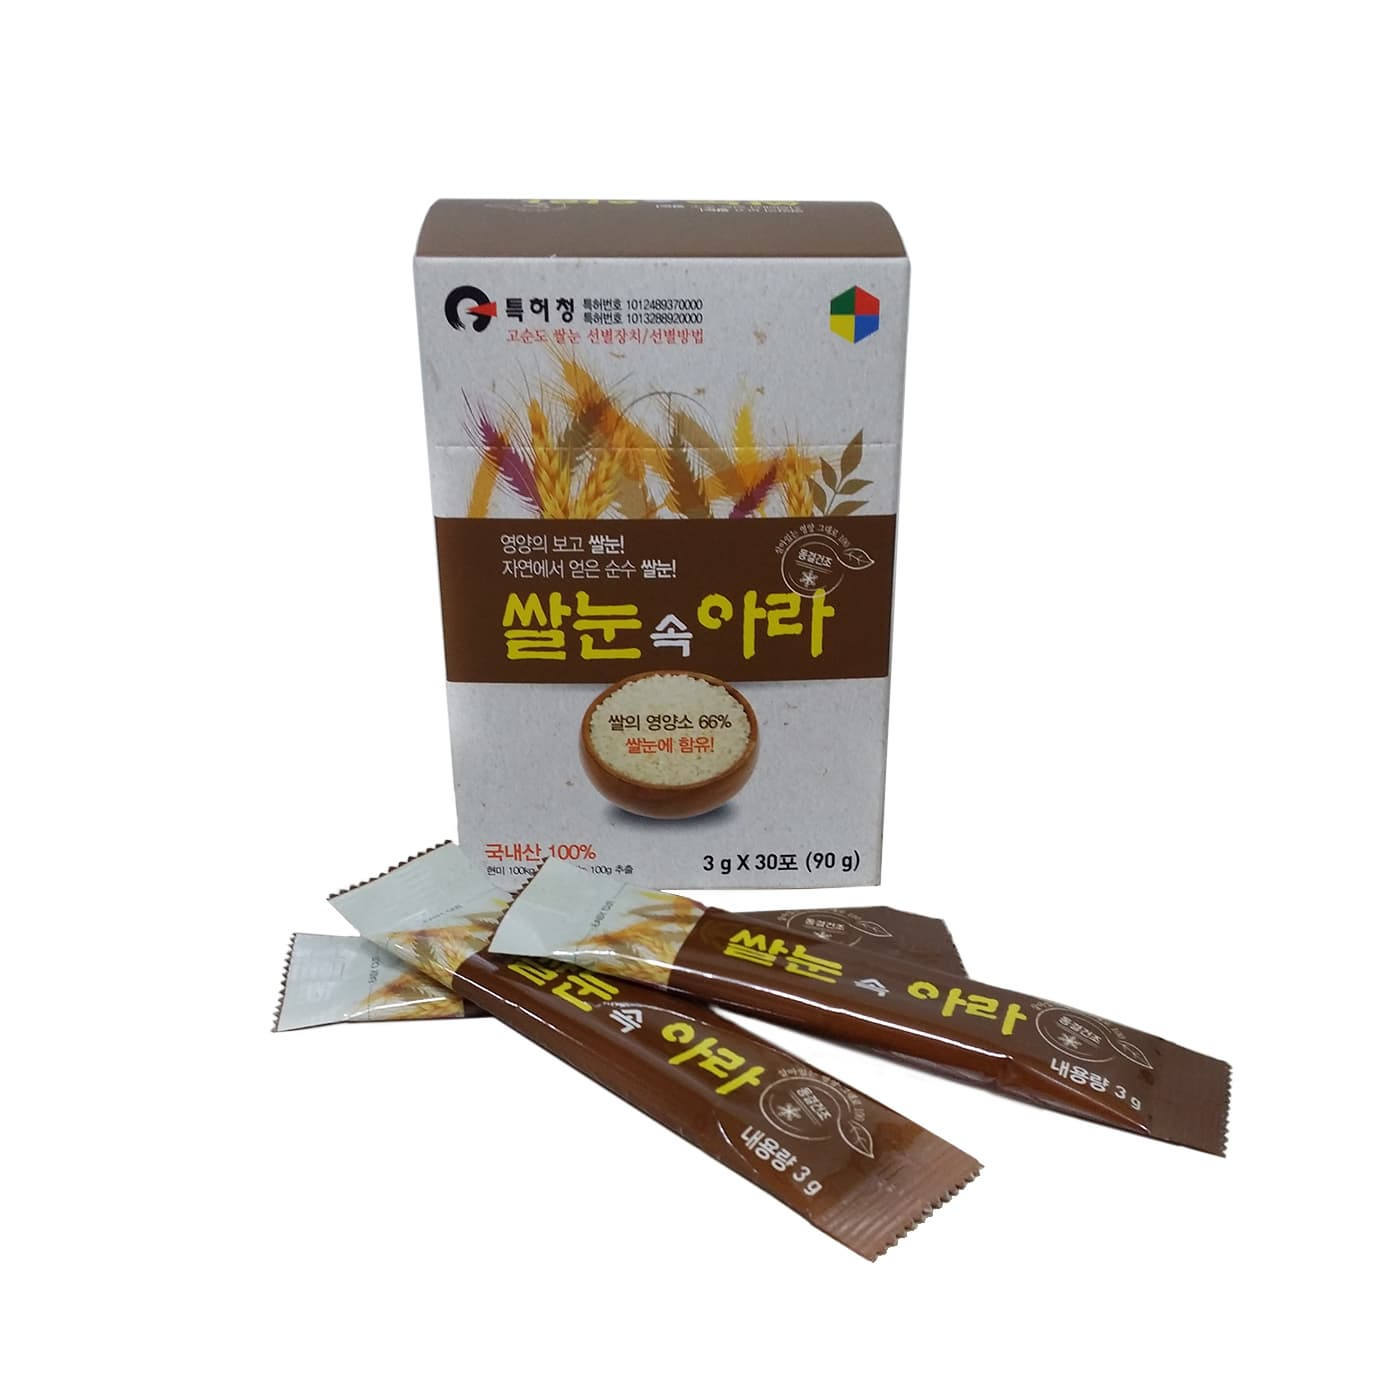 RICE Stick -Freeze-dried rice germ stick-